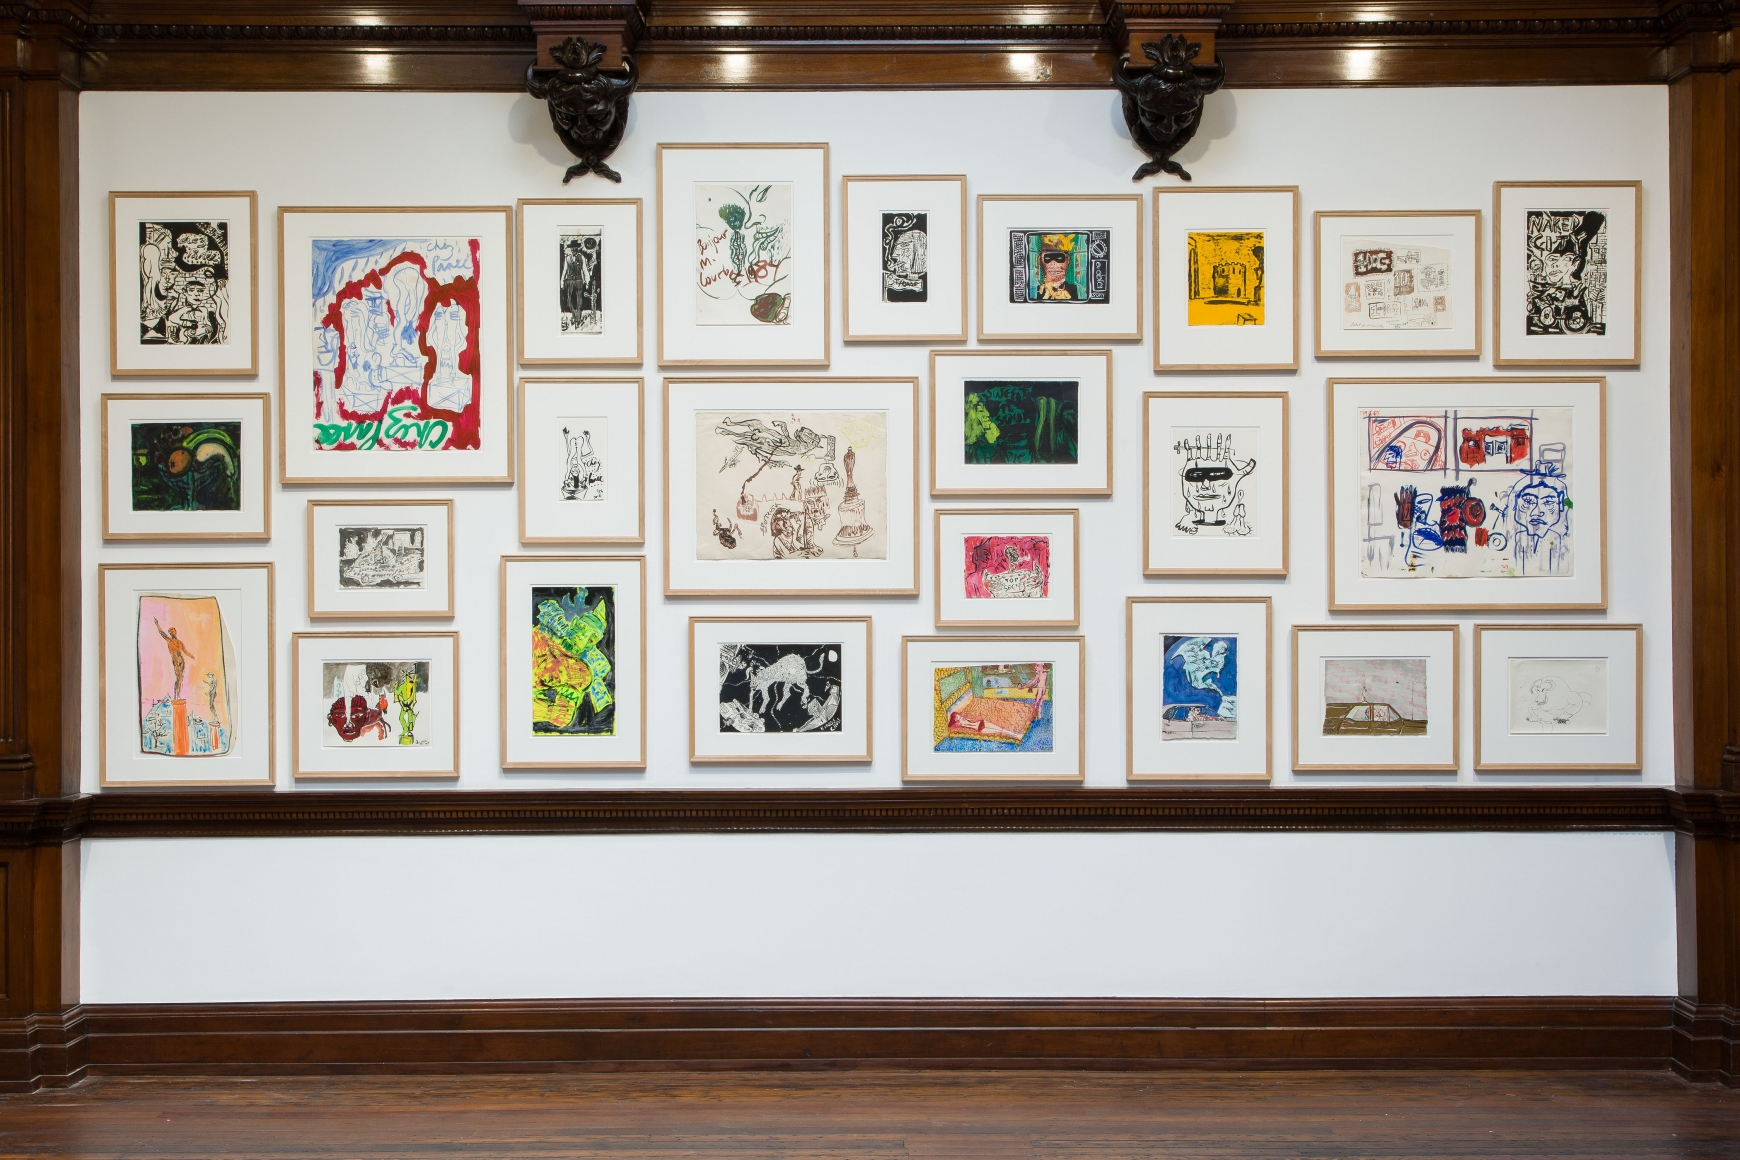 Peter Doig, Early Works, London, 2014, Installation Image 10